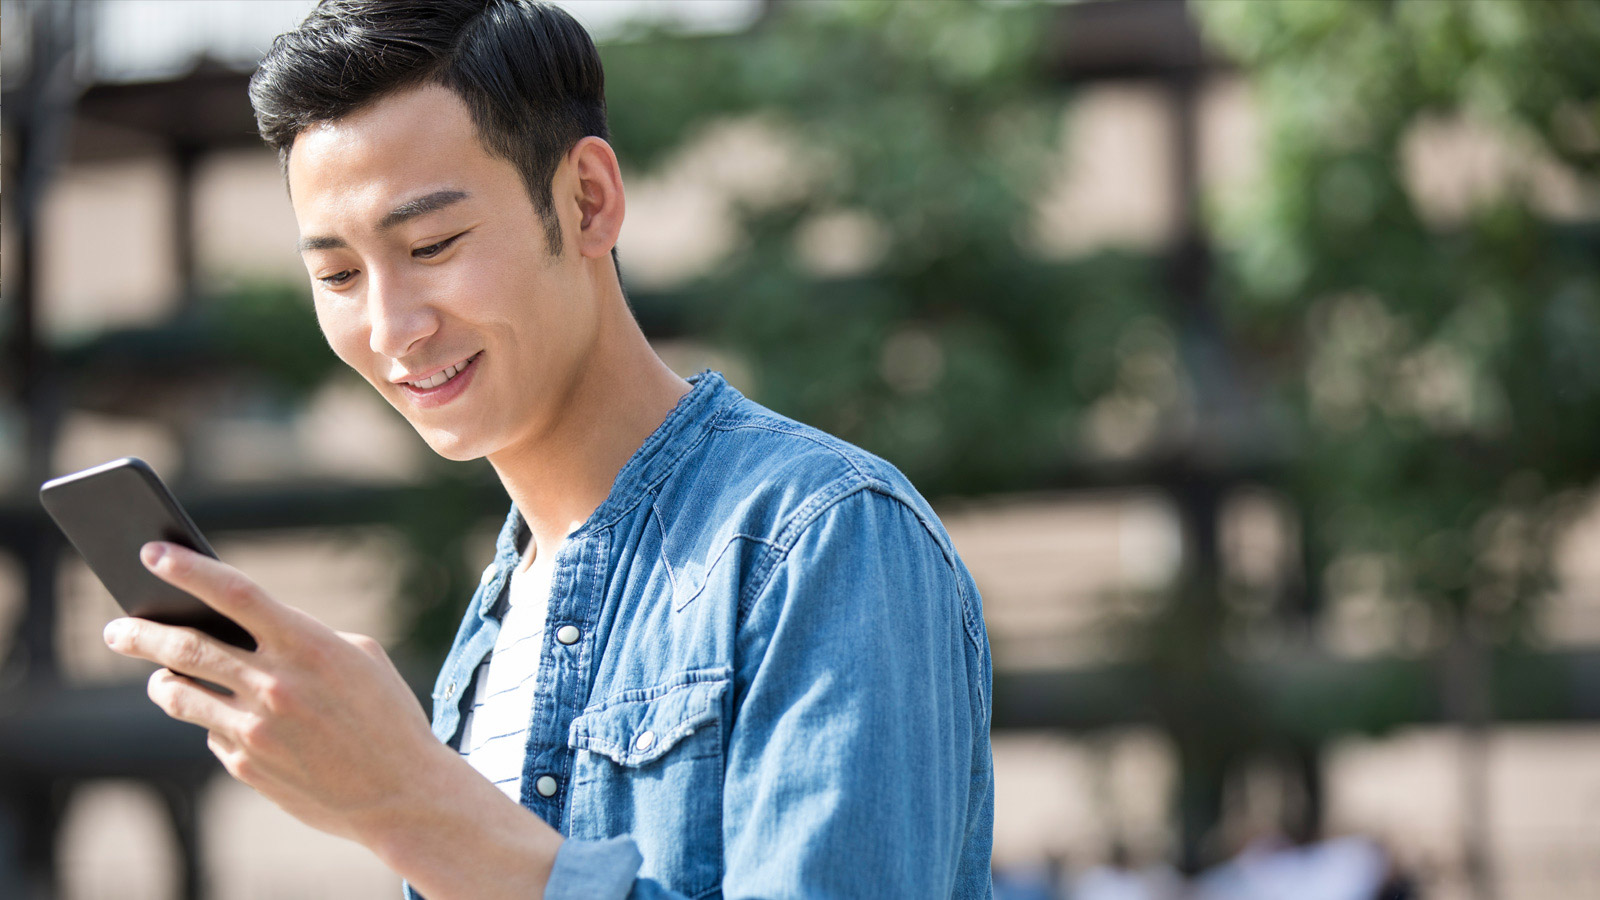 A young man looking at this cell phone.